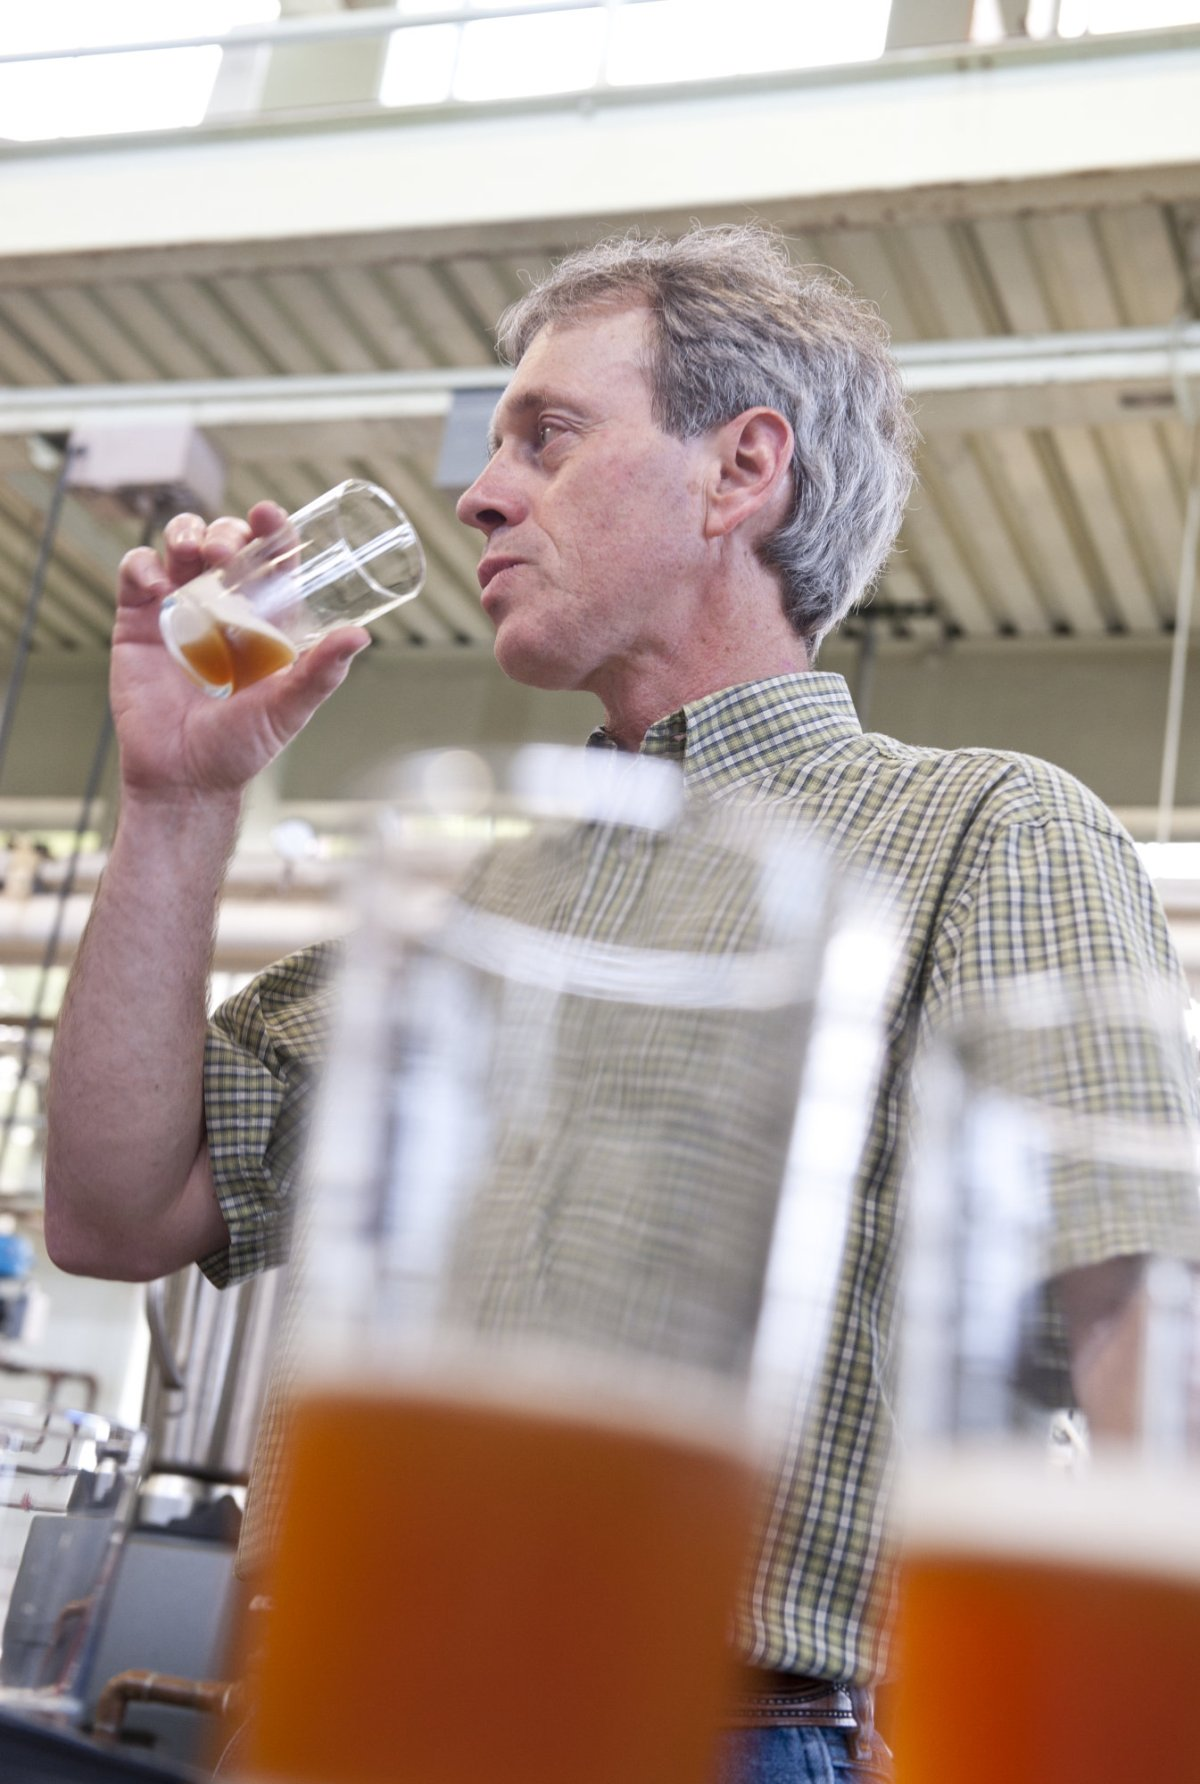 Shaun Townsend participating in sensory beer tasting